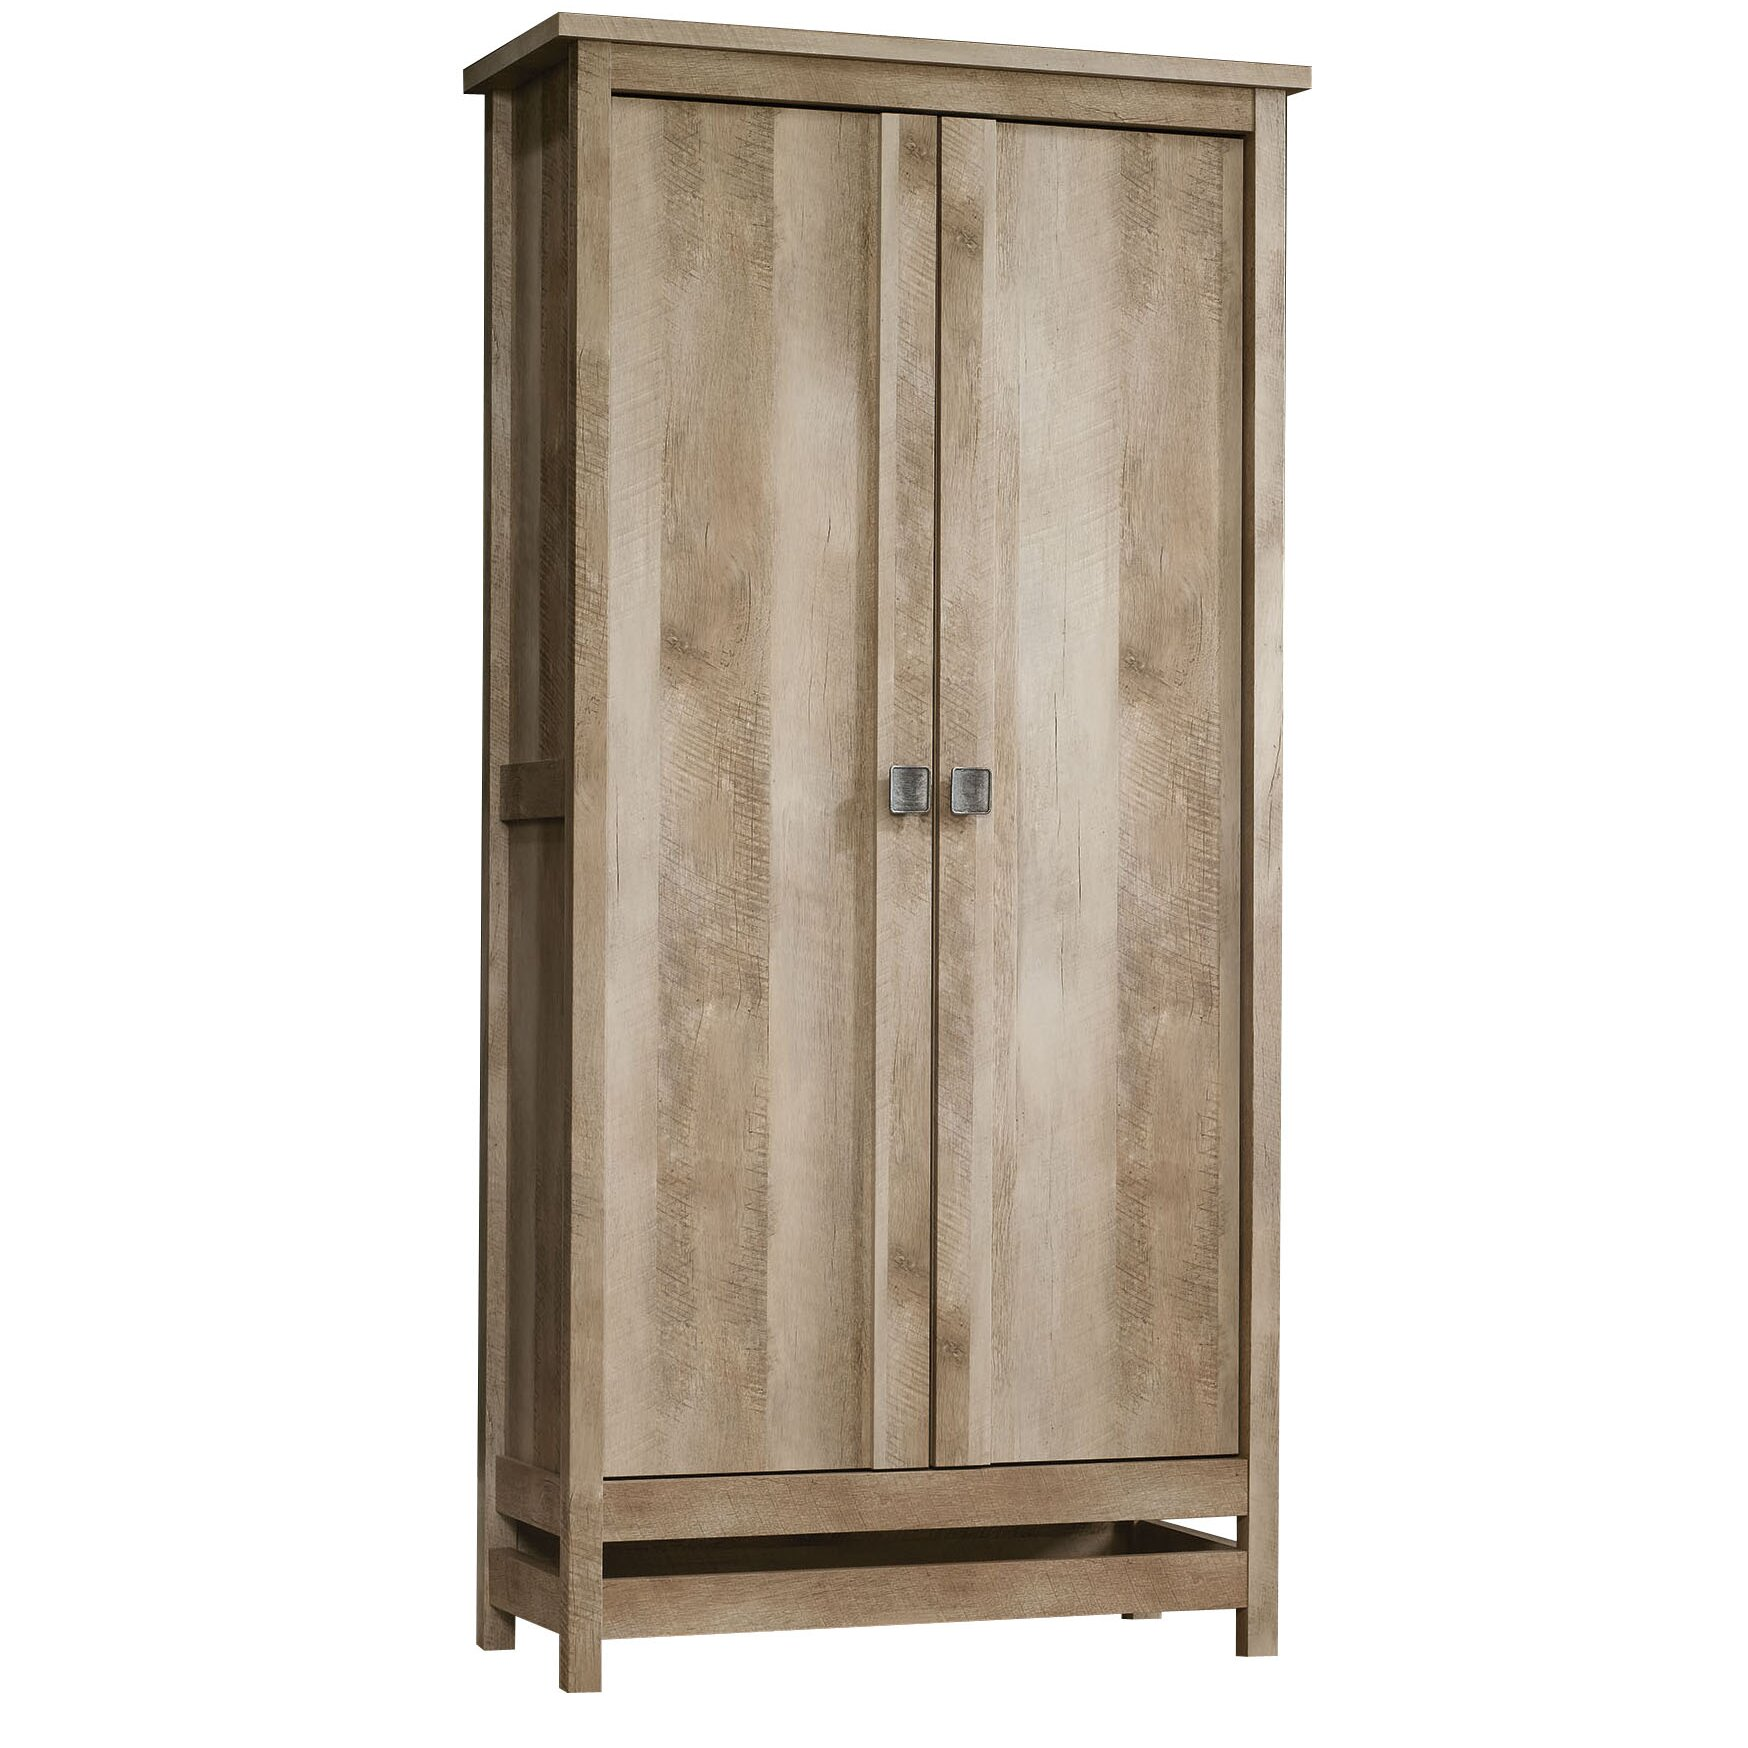 Sauder cannery bridge 2 door storage cabinet reviews for One day doors and closets reviews